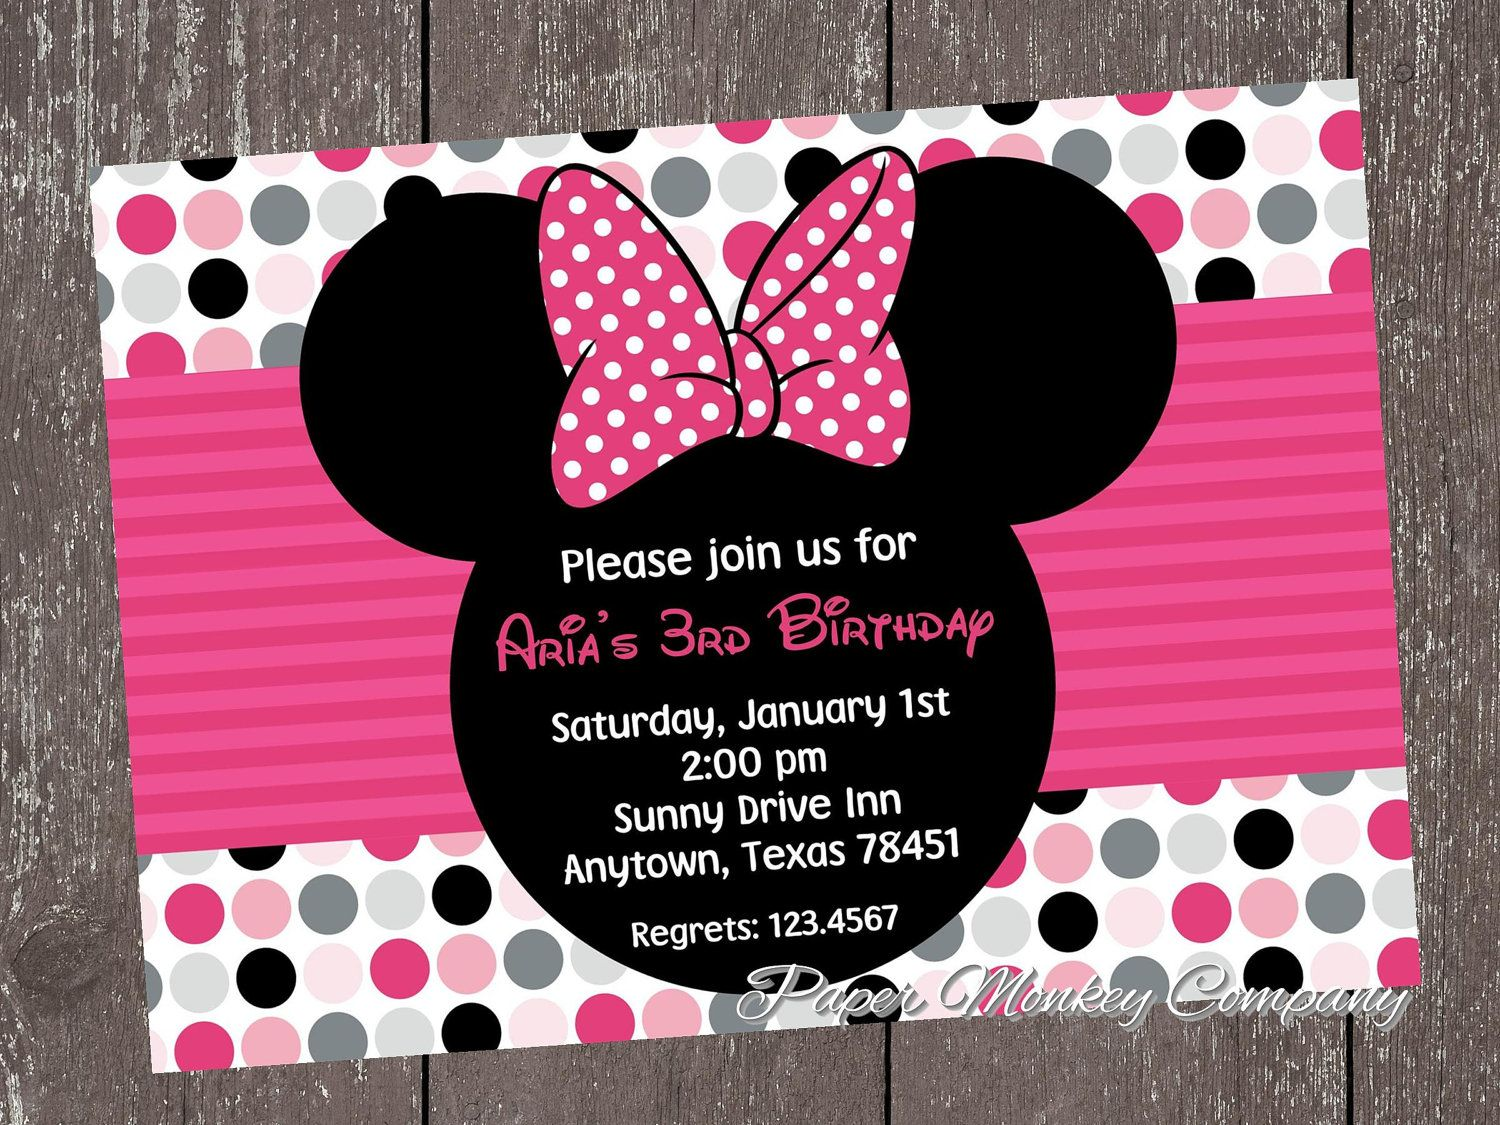 Custom Printed Birthday Invitations 100 each with envelope – Minnie Invitations for Birthdays